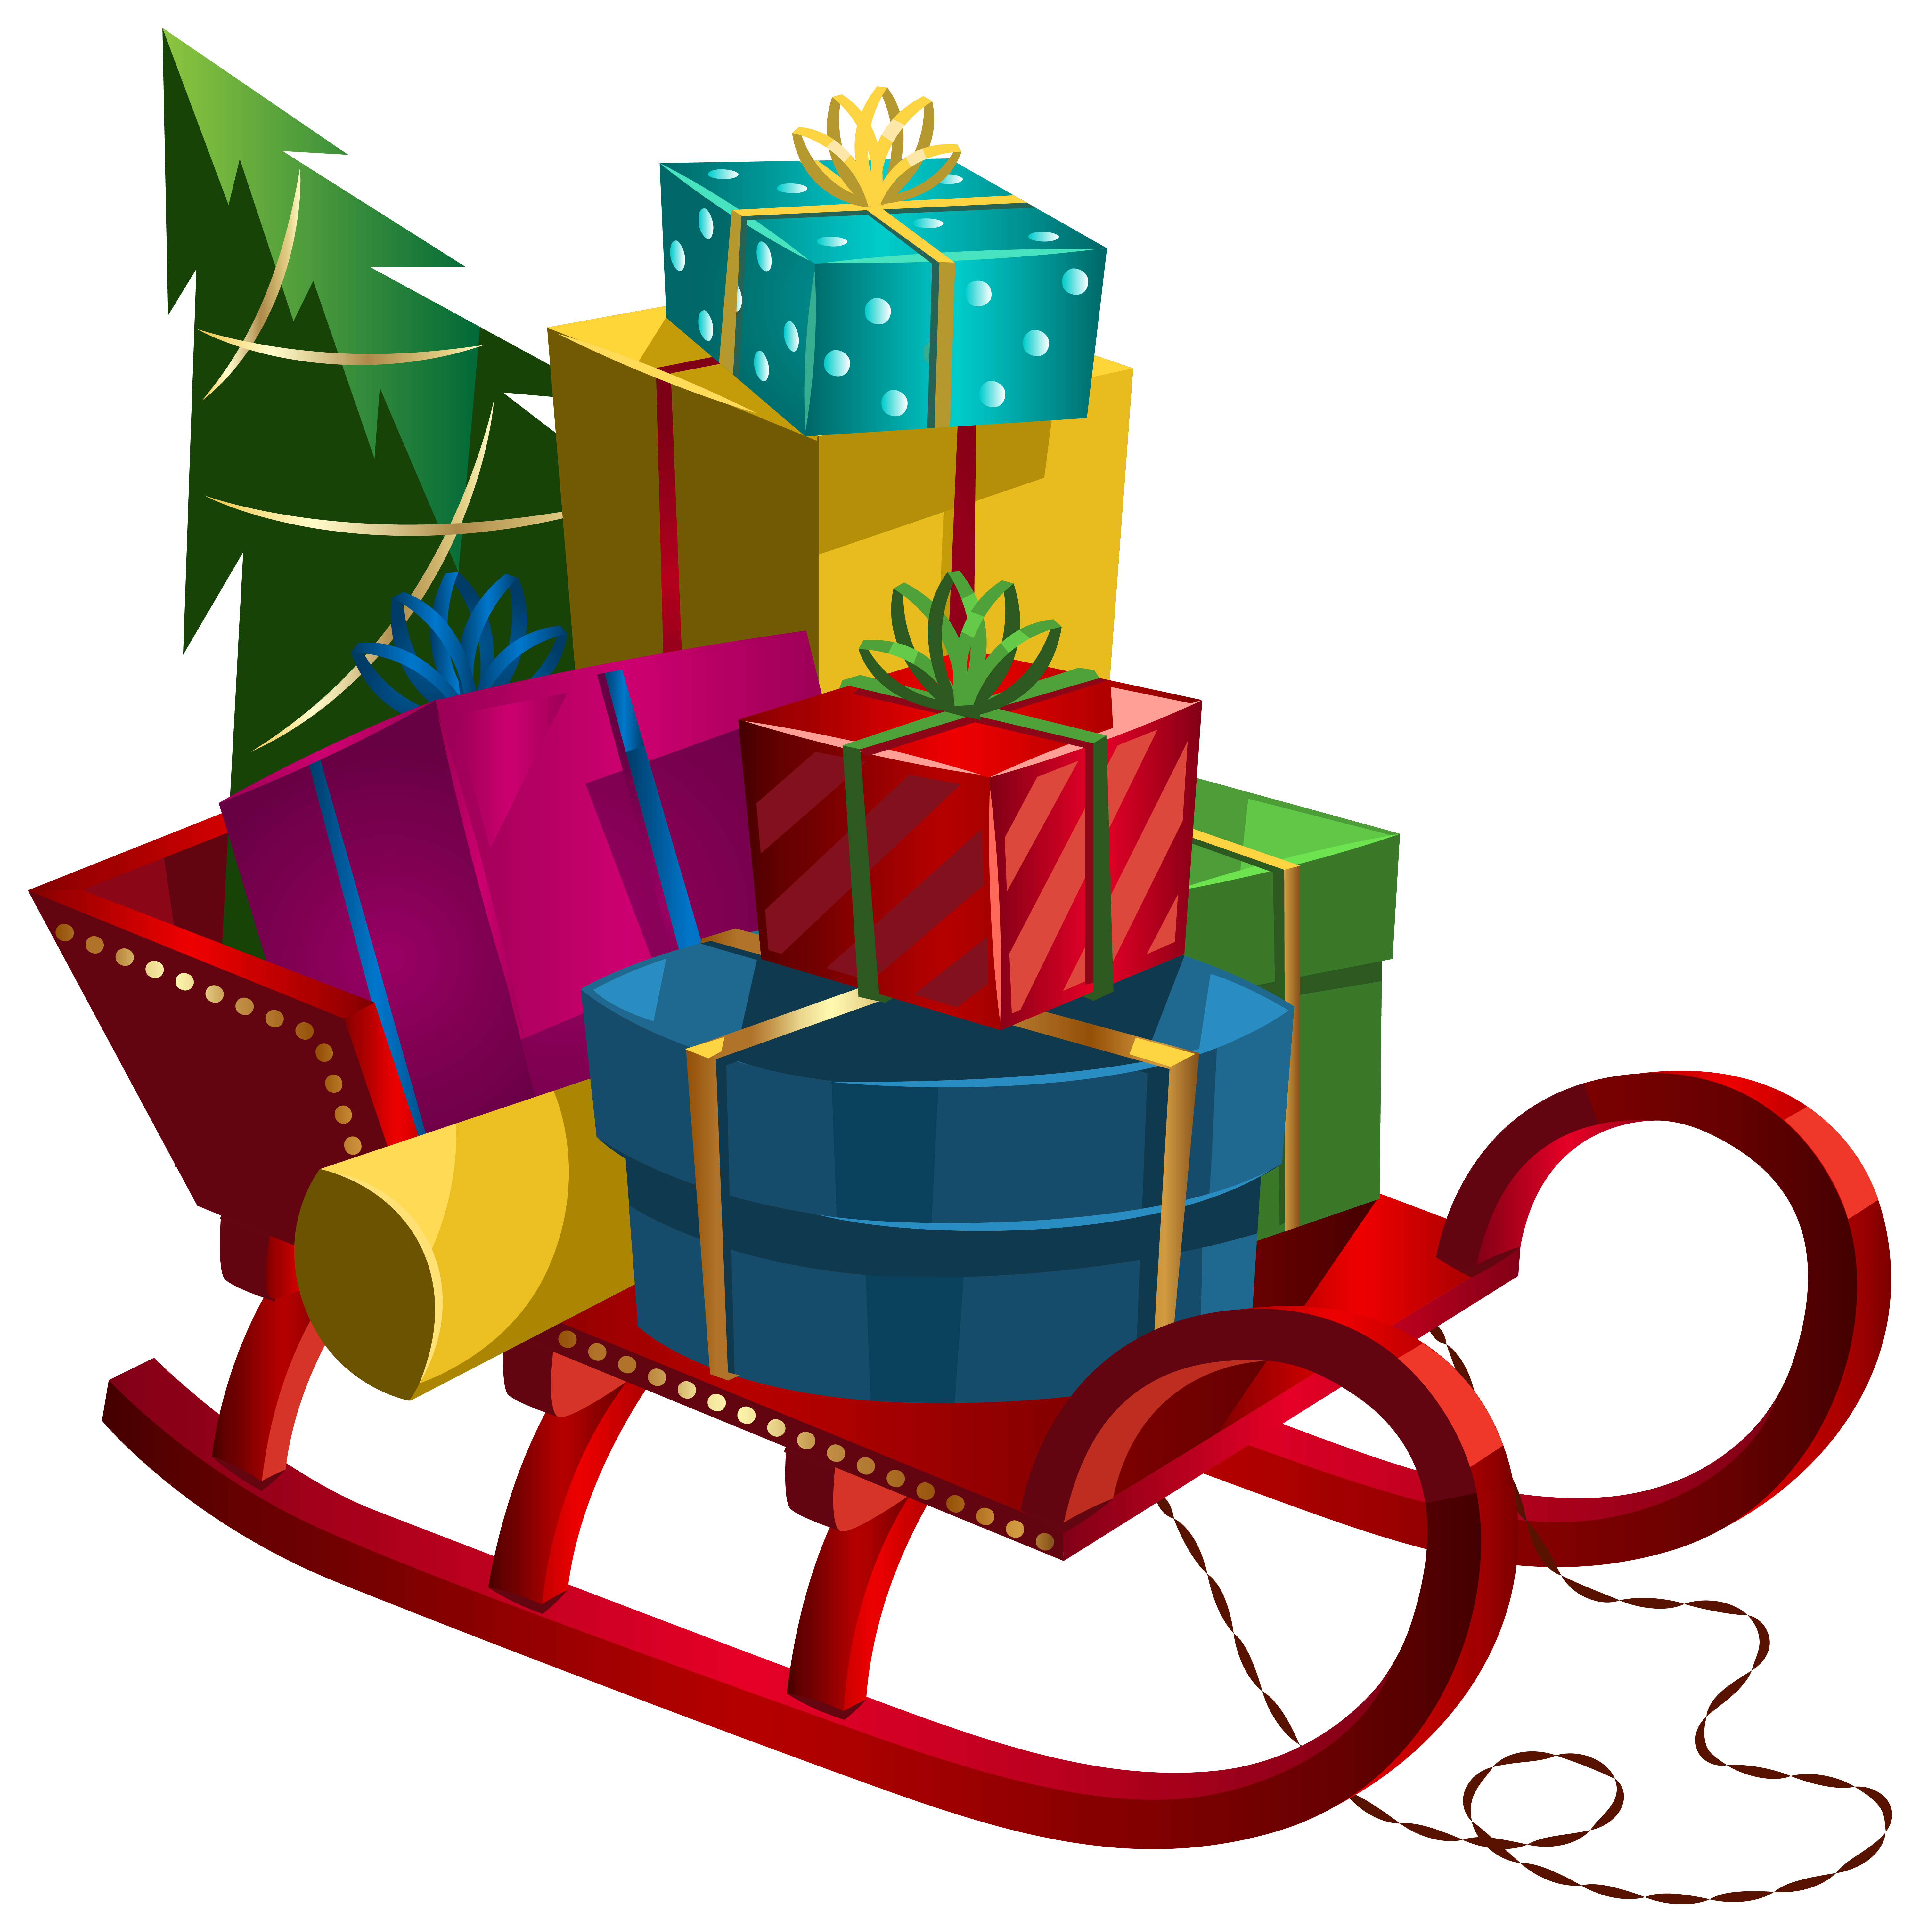 Sleigh clipart sled. Christmas with gifts png